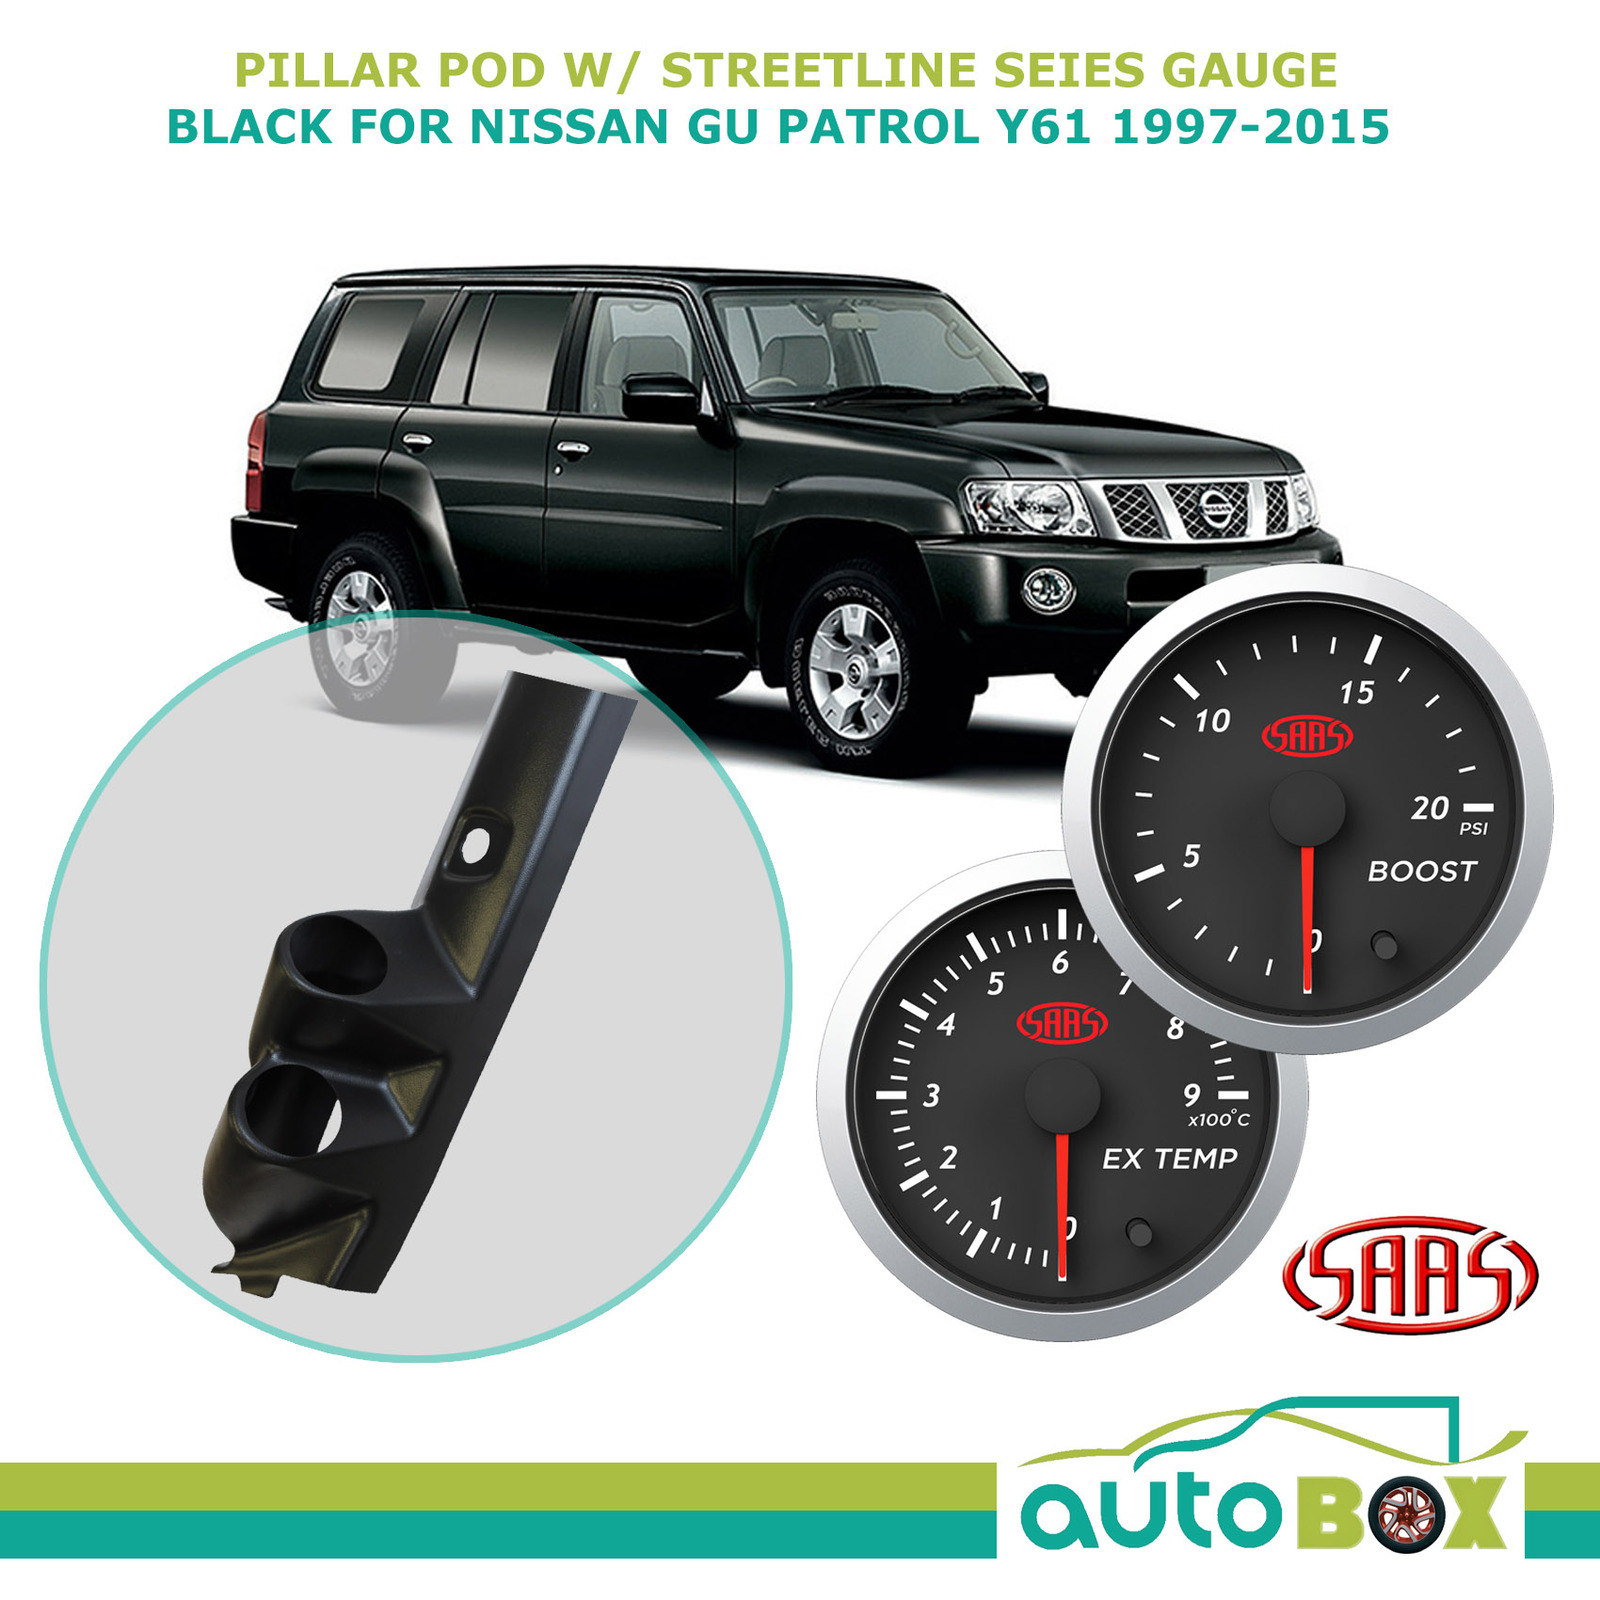 Pillar Pod Holder w/ Street Boost EGT Gauges for Nissan GU Patrol Y61  1997-2015 | Autobox